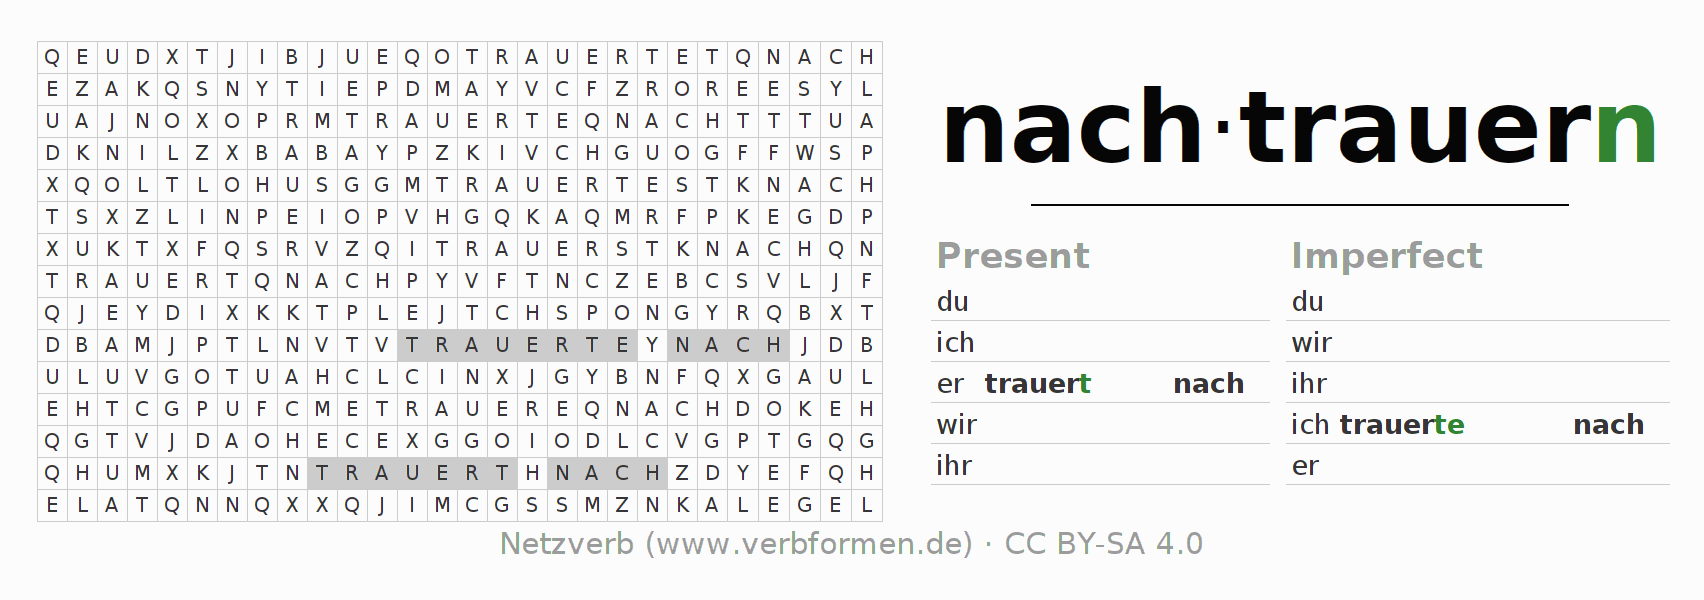 Word search puzzle for the conjugation of the verb nachtrauern